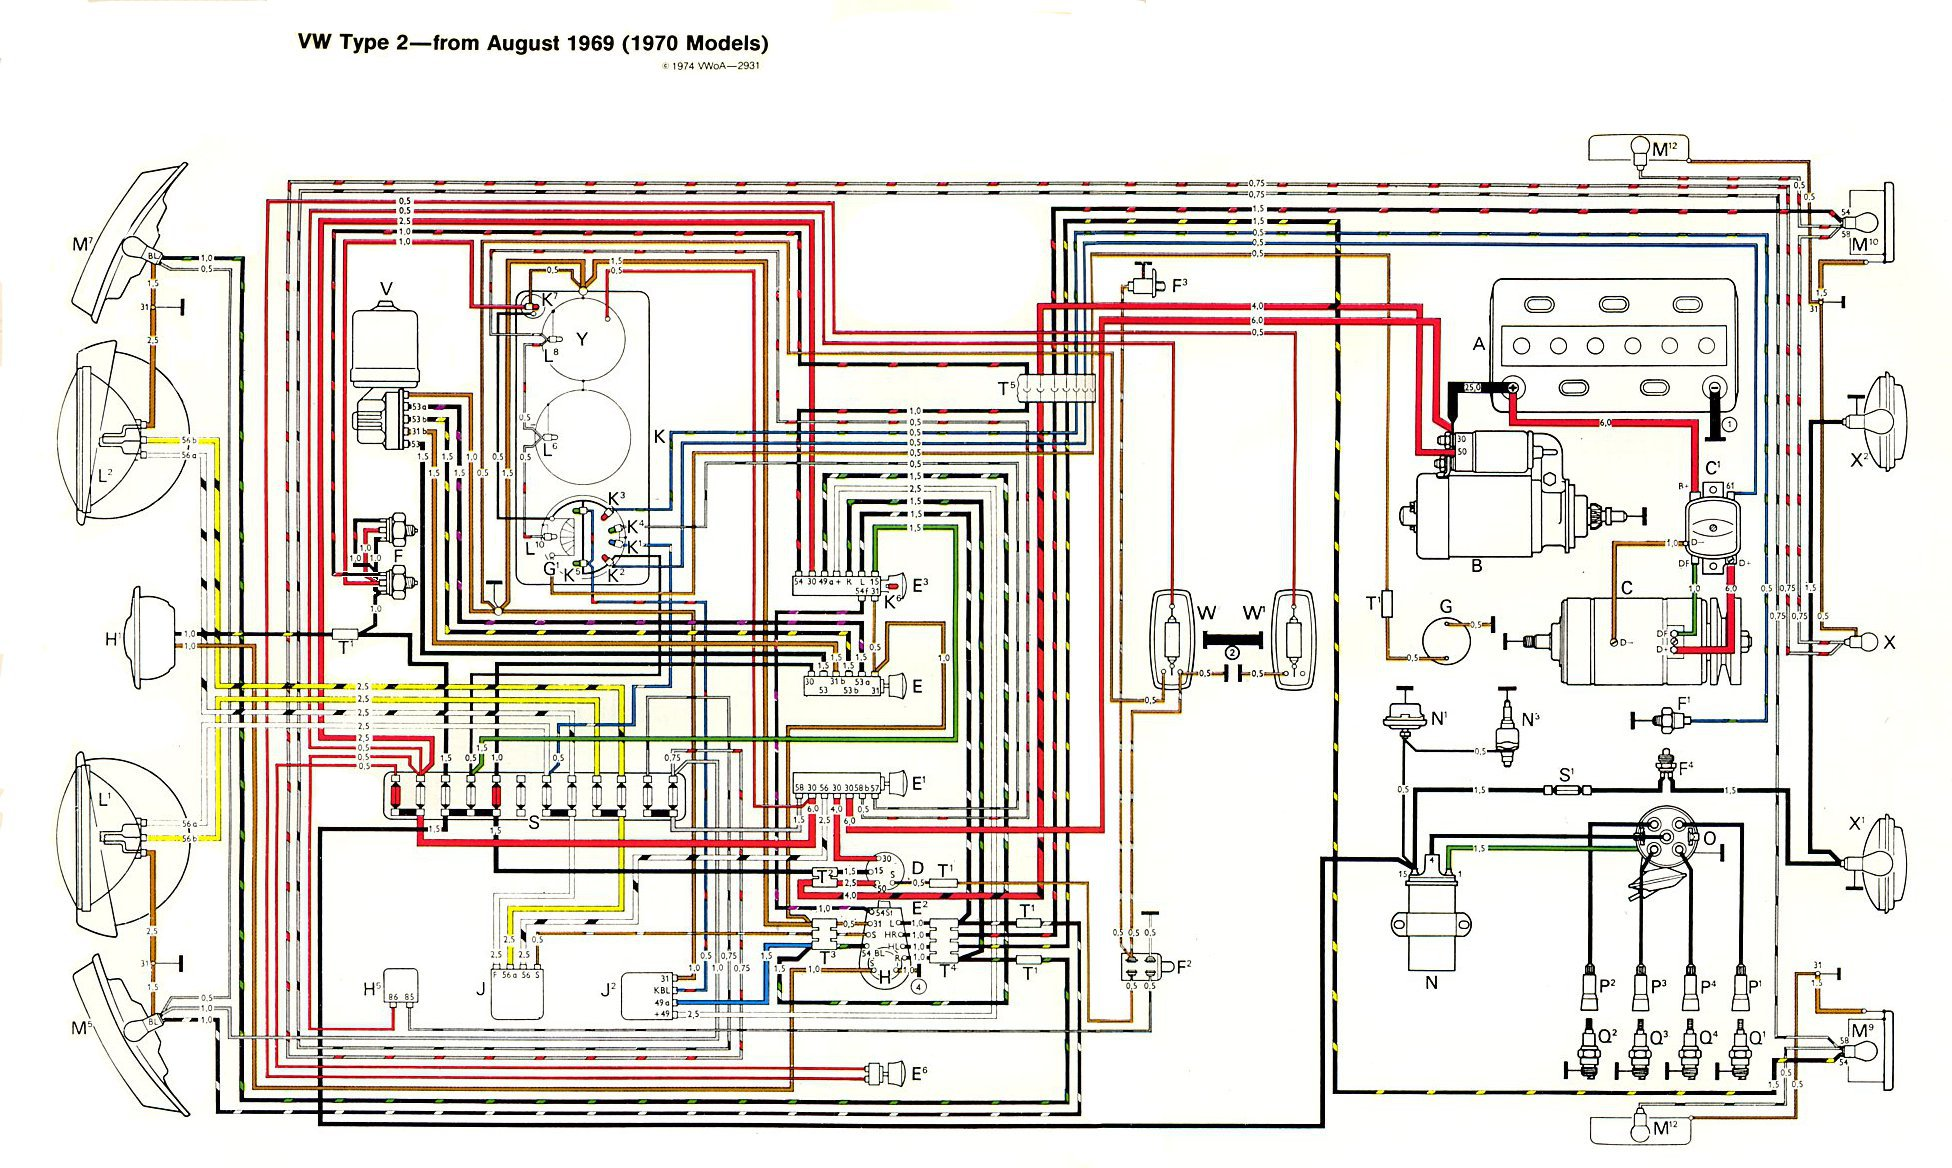 Engine Diagram together with Bus as well Beetle Parts Accessories further Vw Jetta Engine Fuse Box Diagram in addition Sideview Cooling System Drawing. on 1971 vw beetle engine diagram